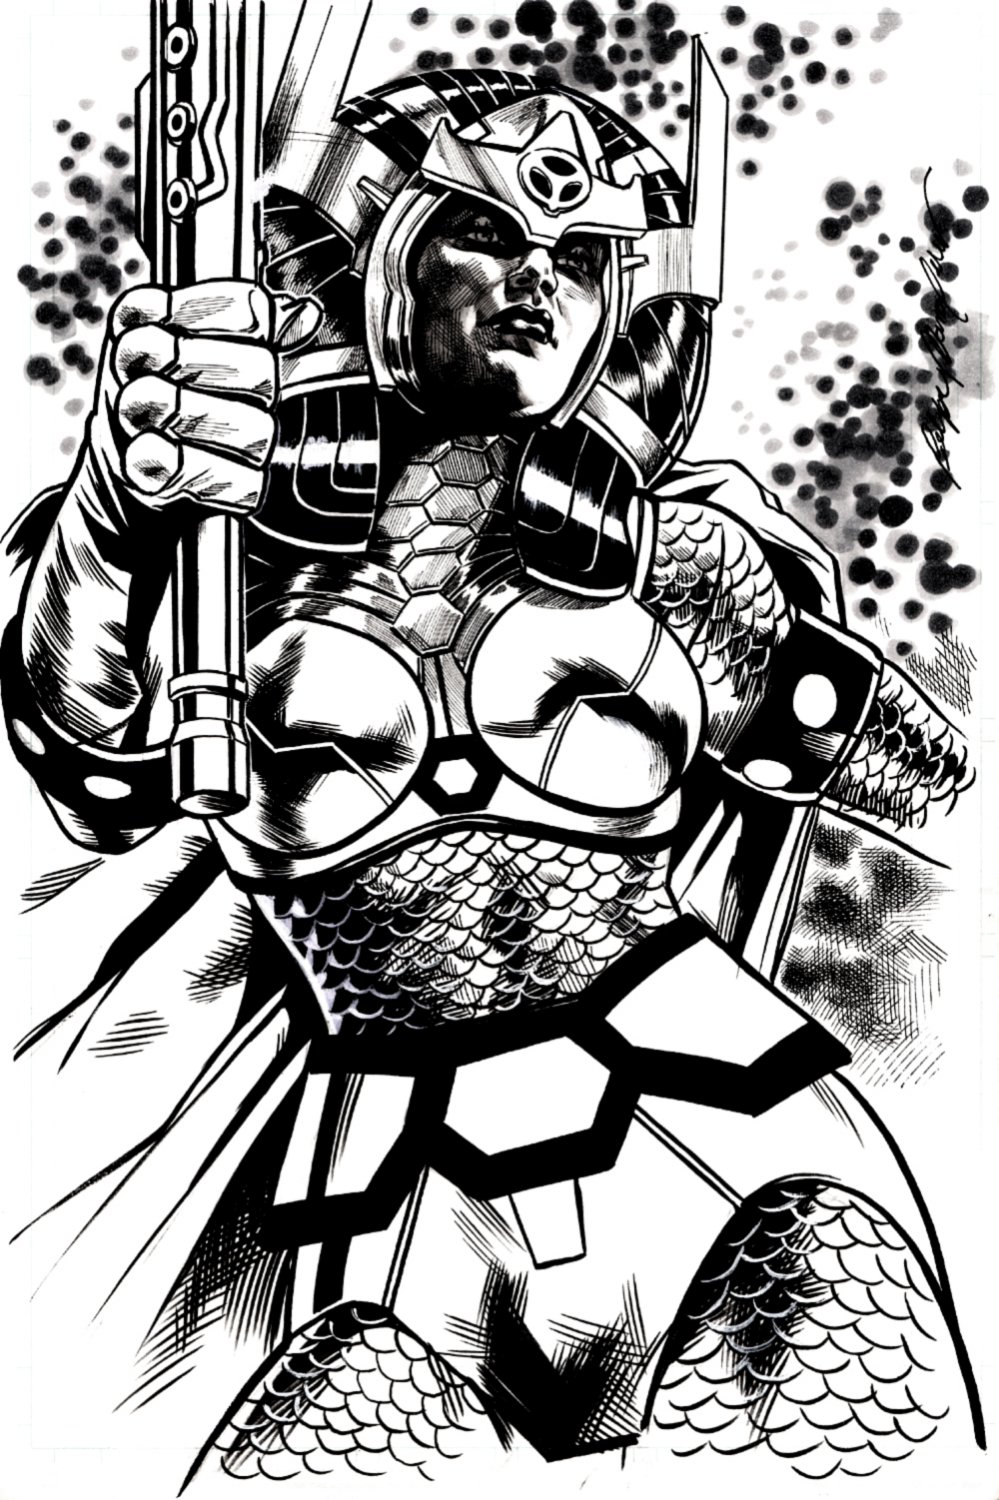 Big Barda Illustration (SOLD LIVE ON 'DUELING DEALERS OF COMIC ART' EPISODE #33 PODCAST ON 8-25-2021(RE-WATCH THIS FUNNY ART SELLING SHOW HERE)